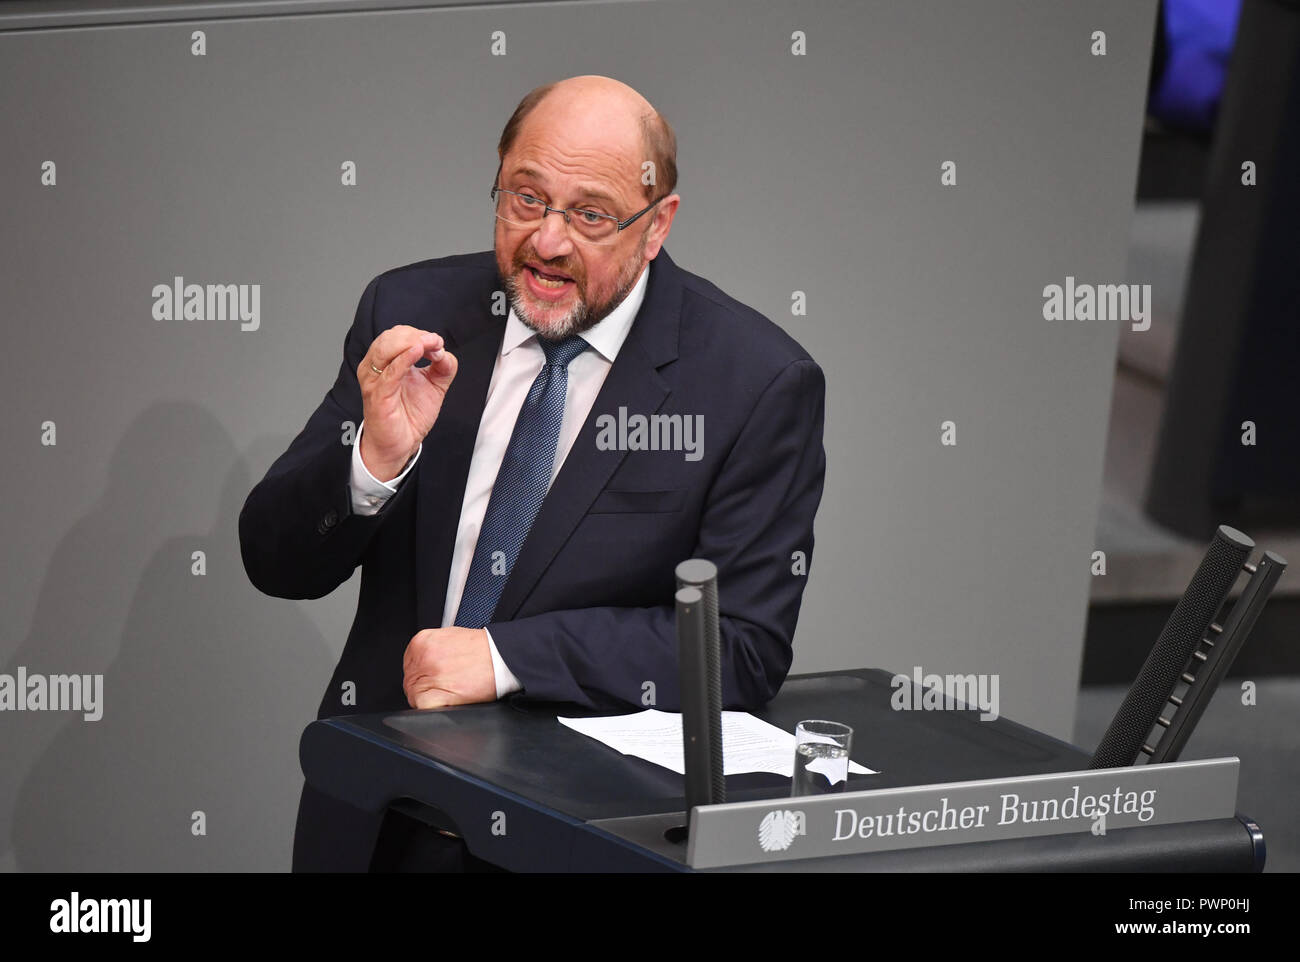 Berlin, Germany. 17th Oct, 2018. Martin Schulz (SPD) speaks at the plenary session of the German Bundestag. The 57th session of the 19th legislature will focus on European policy. Photo: Bernd Von Jutrczenka/dpa Credit: dpa picture alliance/Alamy Live News - Stock Image